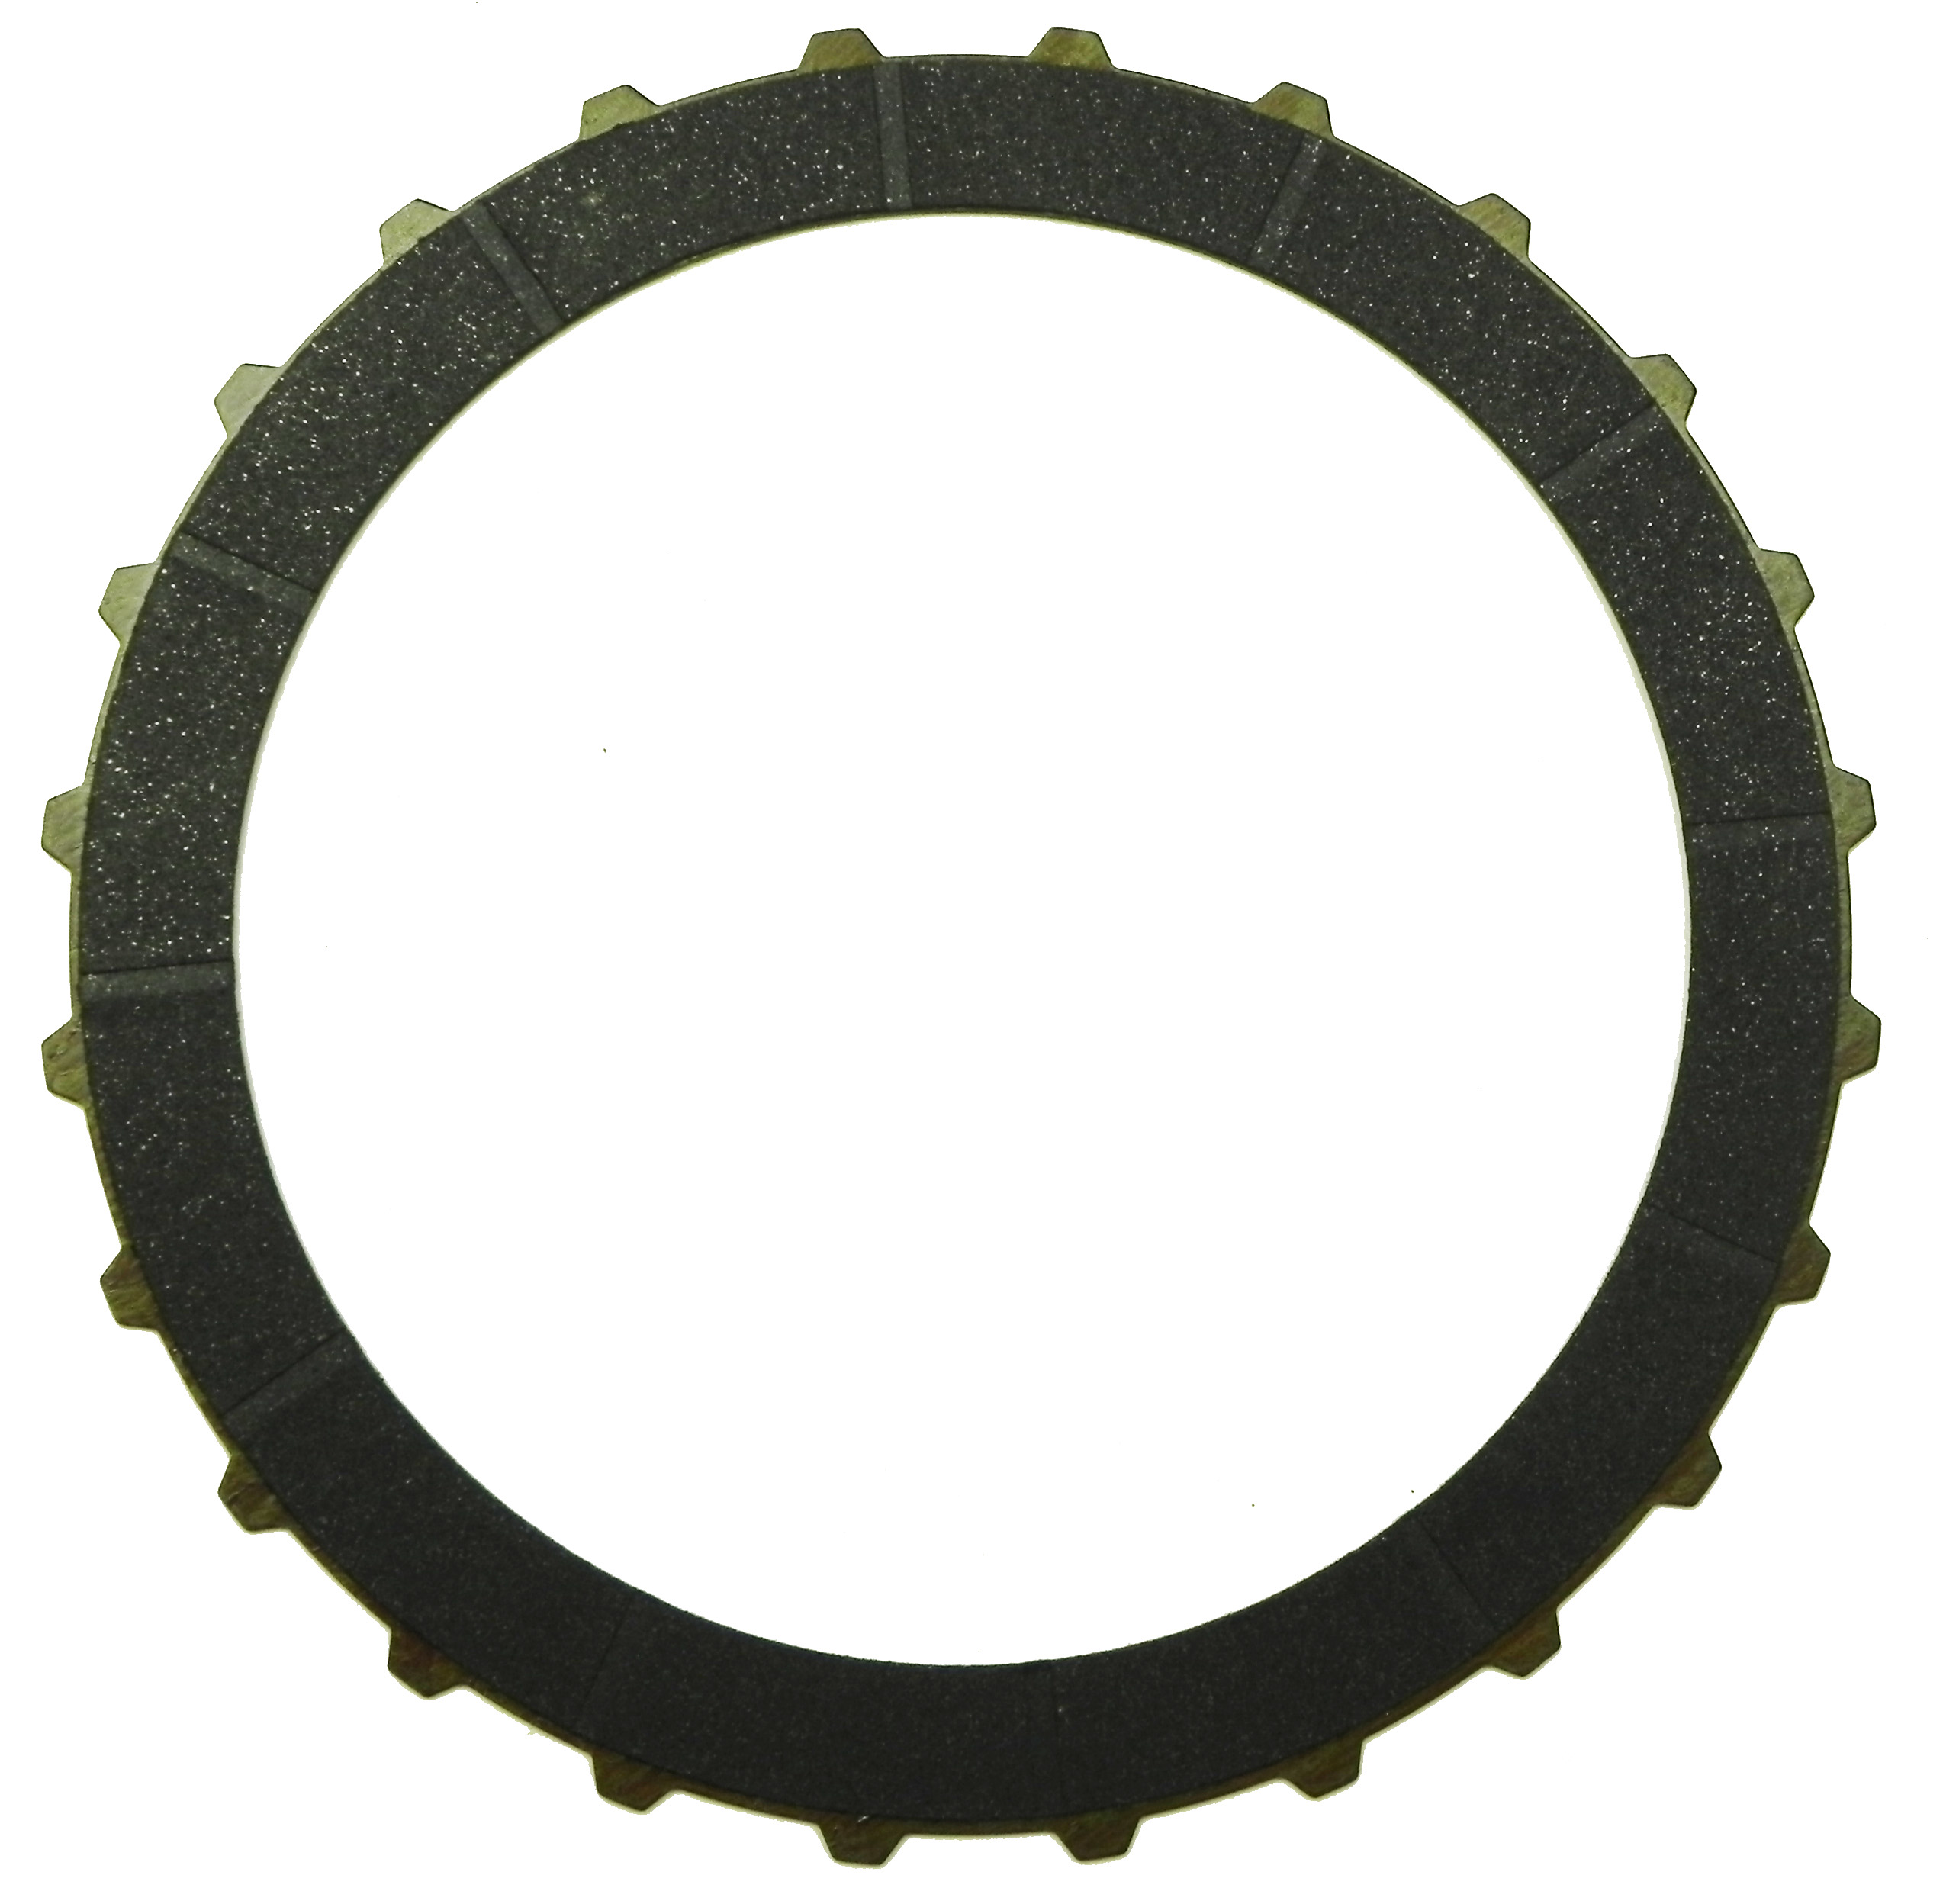 R558470 | 1999-ON Friction Clutch Plate High Energy 2nd, Single Sided, OD Spline, BMW X-3, X-5 Only High Energy